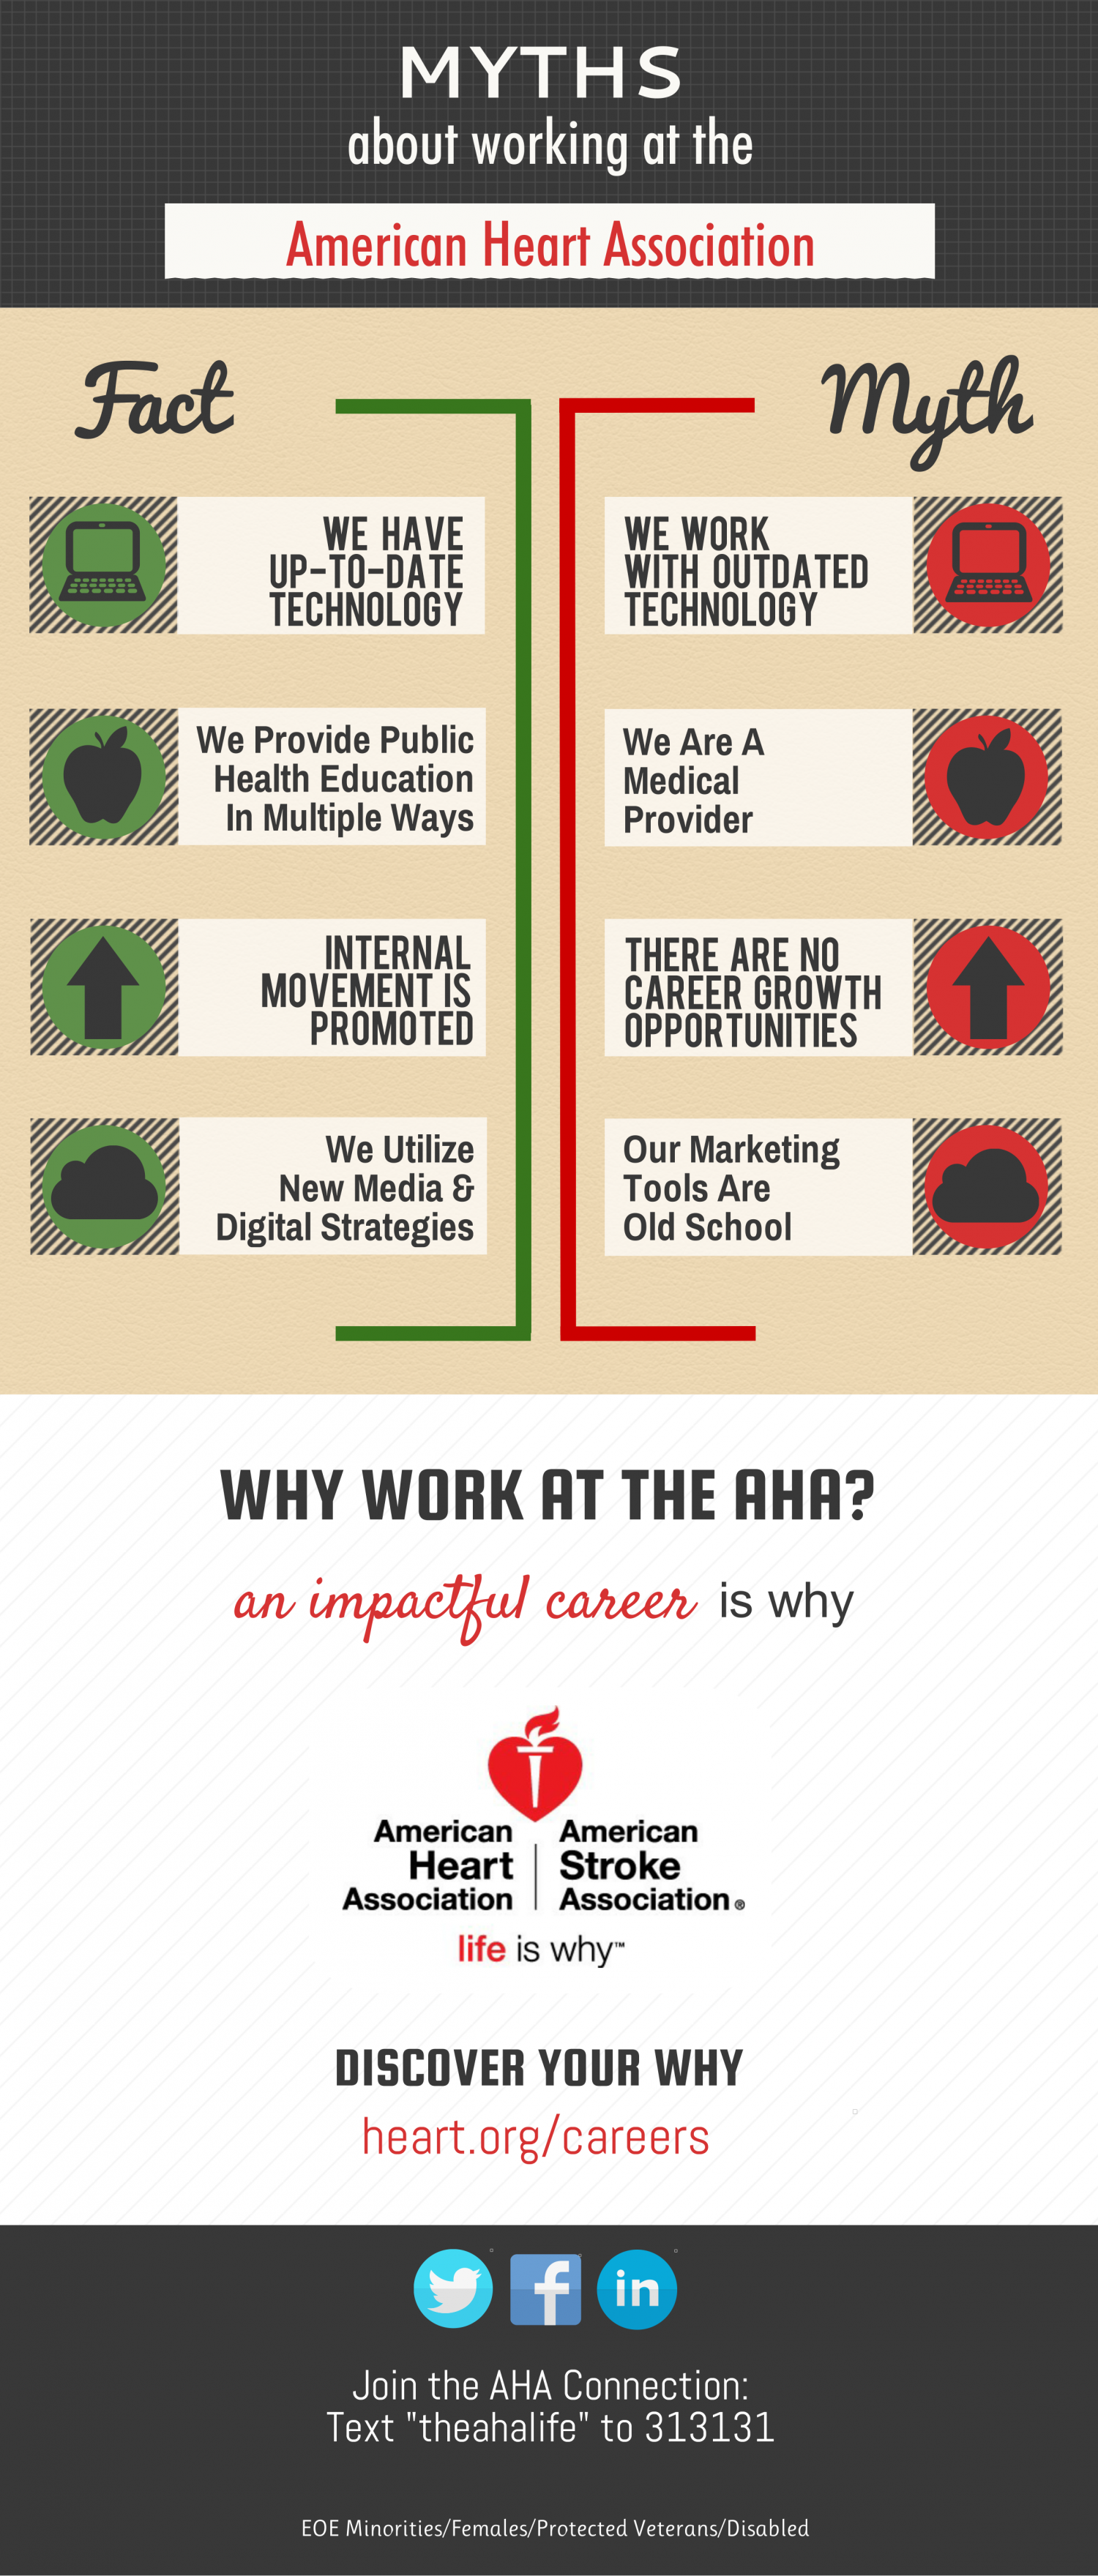 American Heart Association - Myths About Working at the AHA Infographic